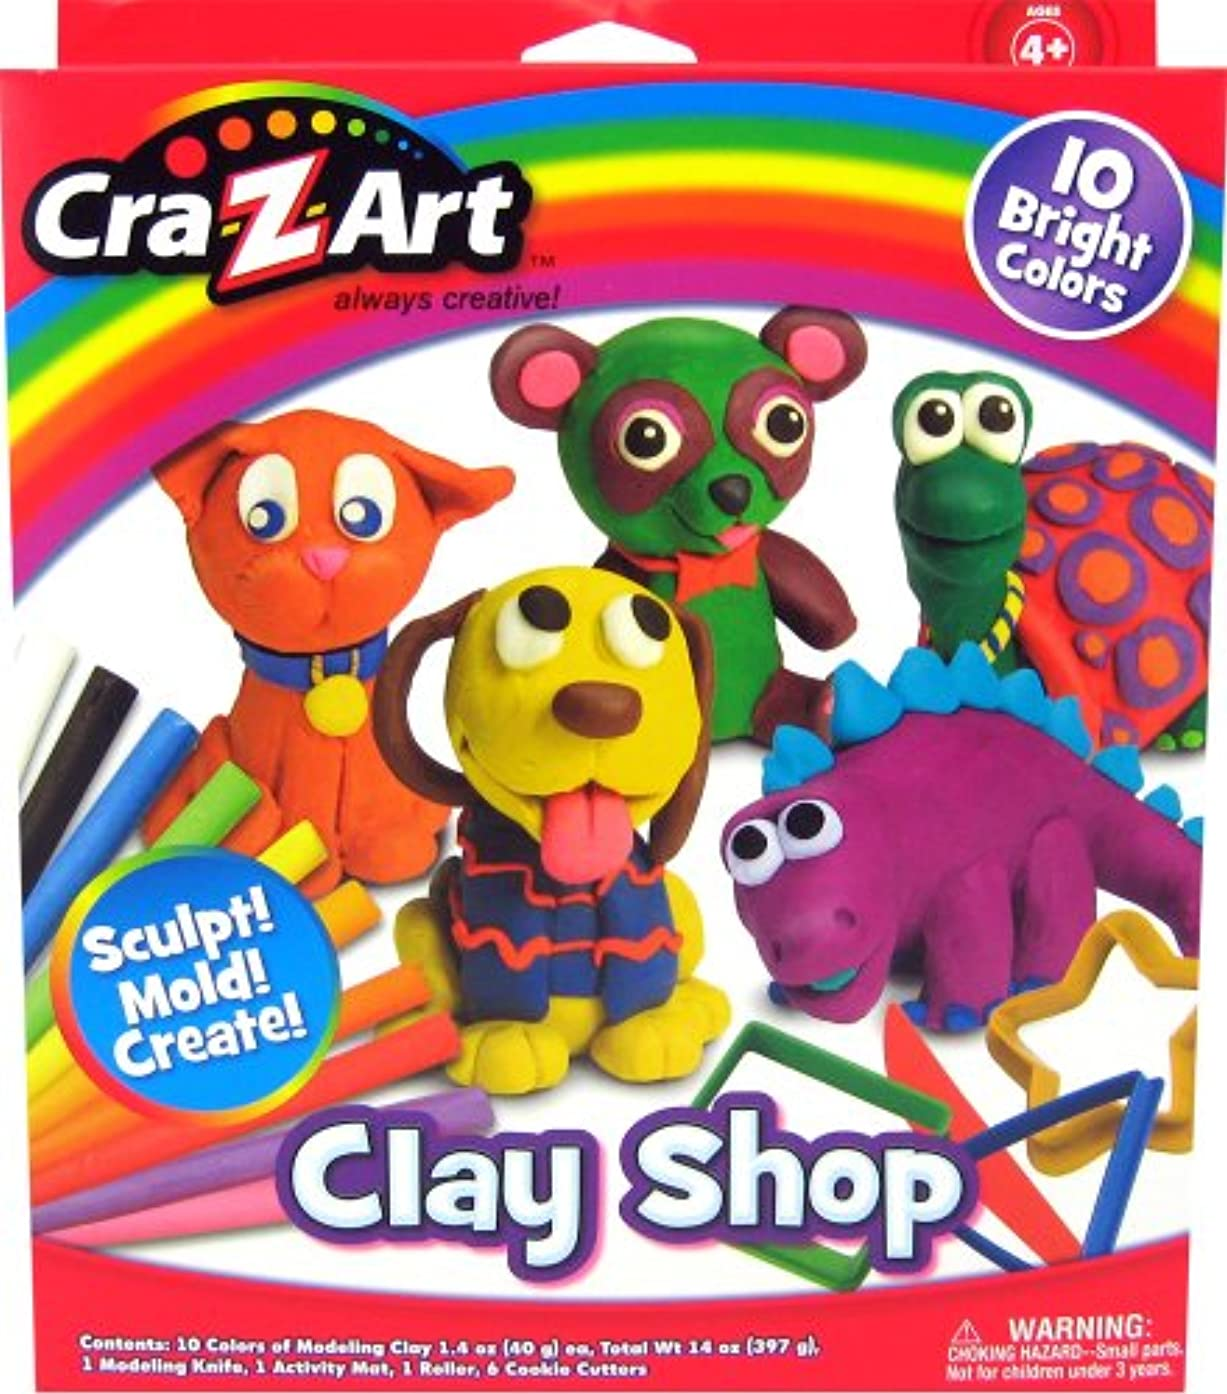 Cra-Z-Art Clay Shop